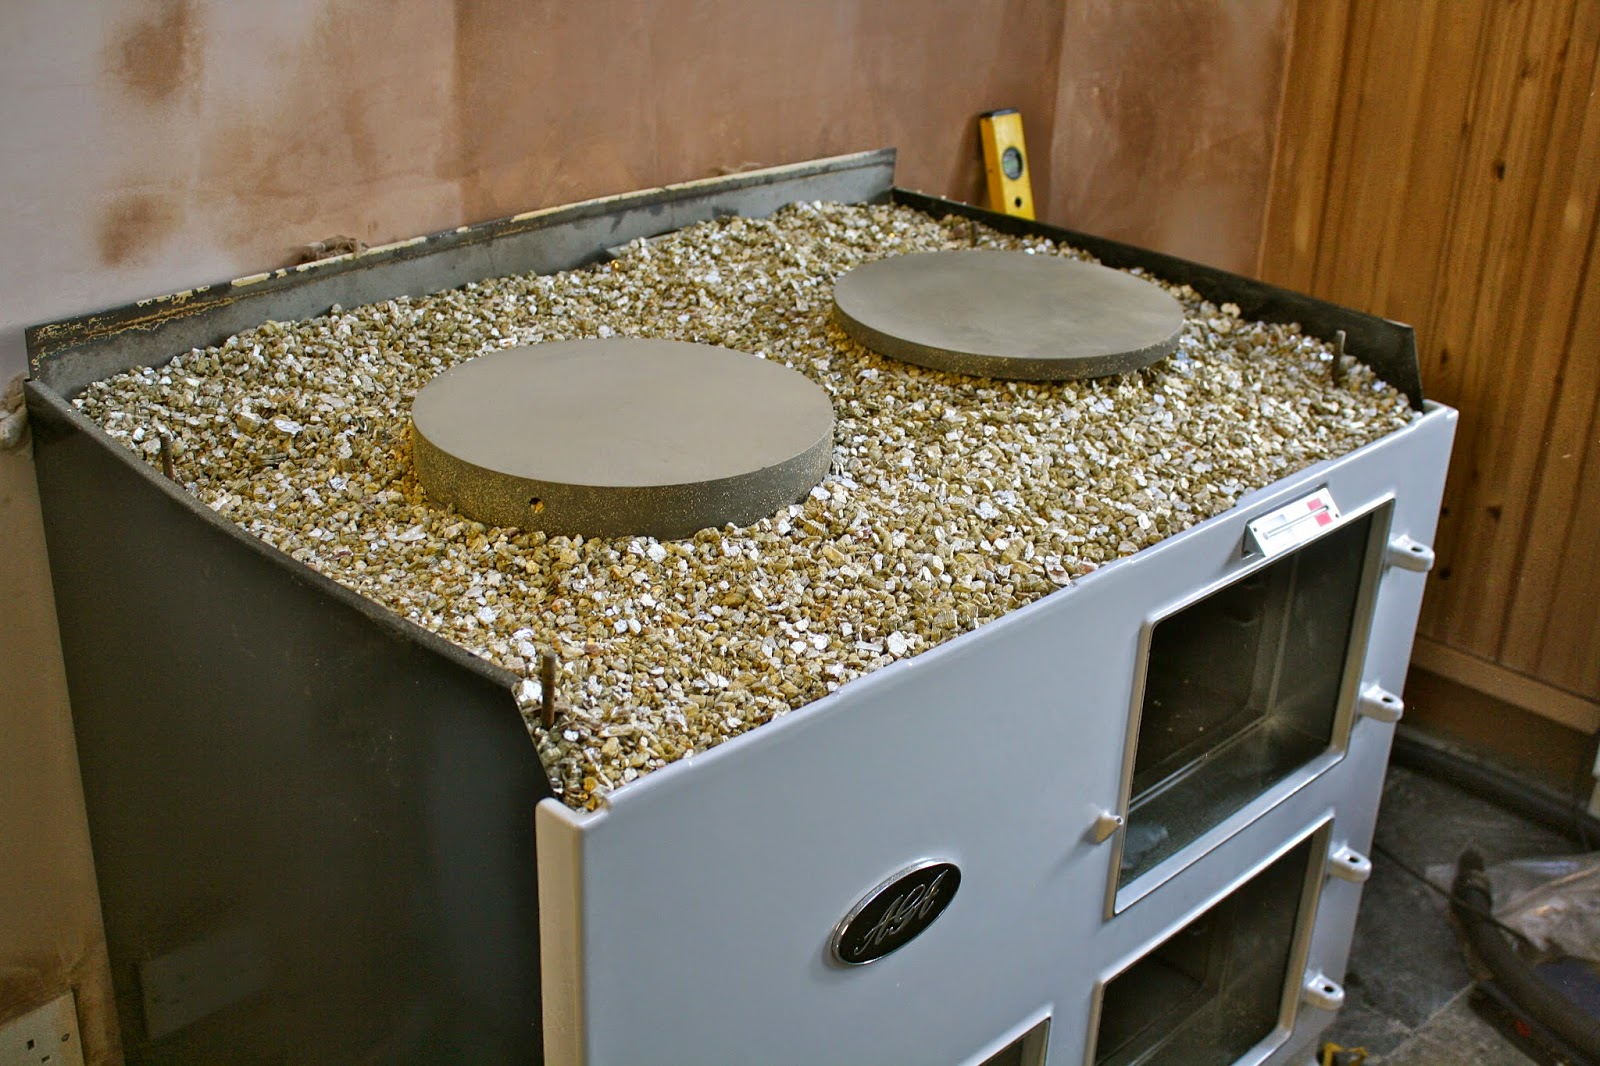 build aga - 6. plates & insulation